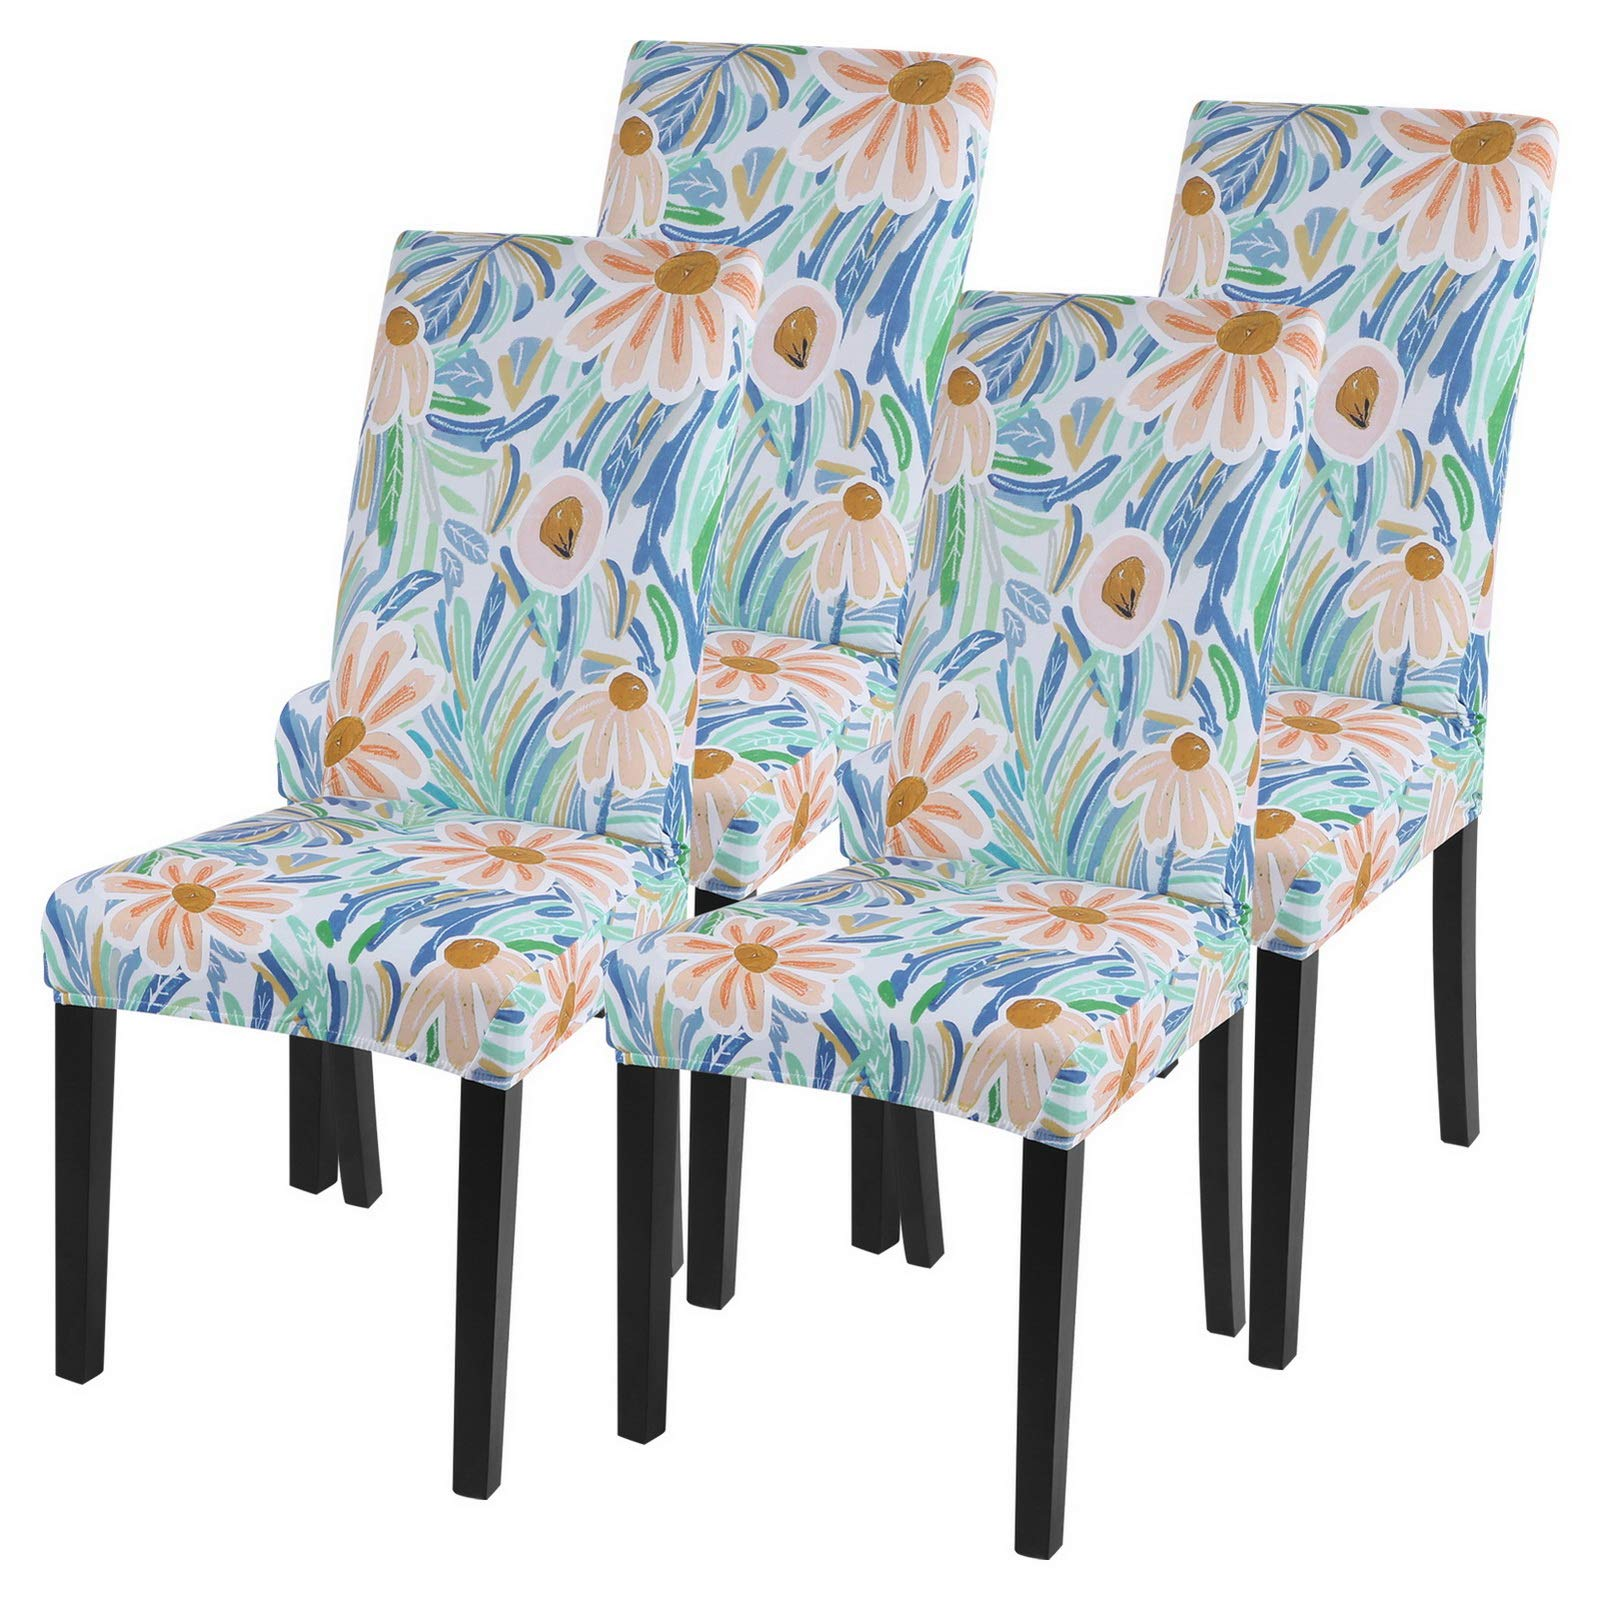 SearchI Dining Room Chair Covers Slipcovers Set of 4, Spandex Super Fit Stretch Removable Washable Kitchen Parsons Chair Covers Protector for Dining Room,Hotel,Ceremony(Pattern1)